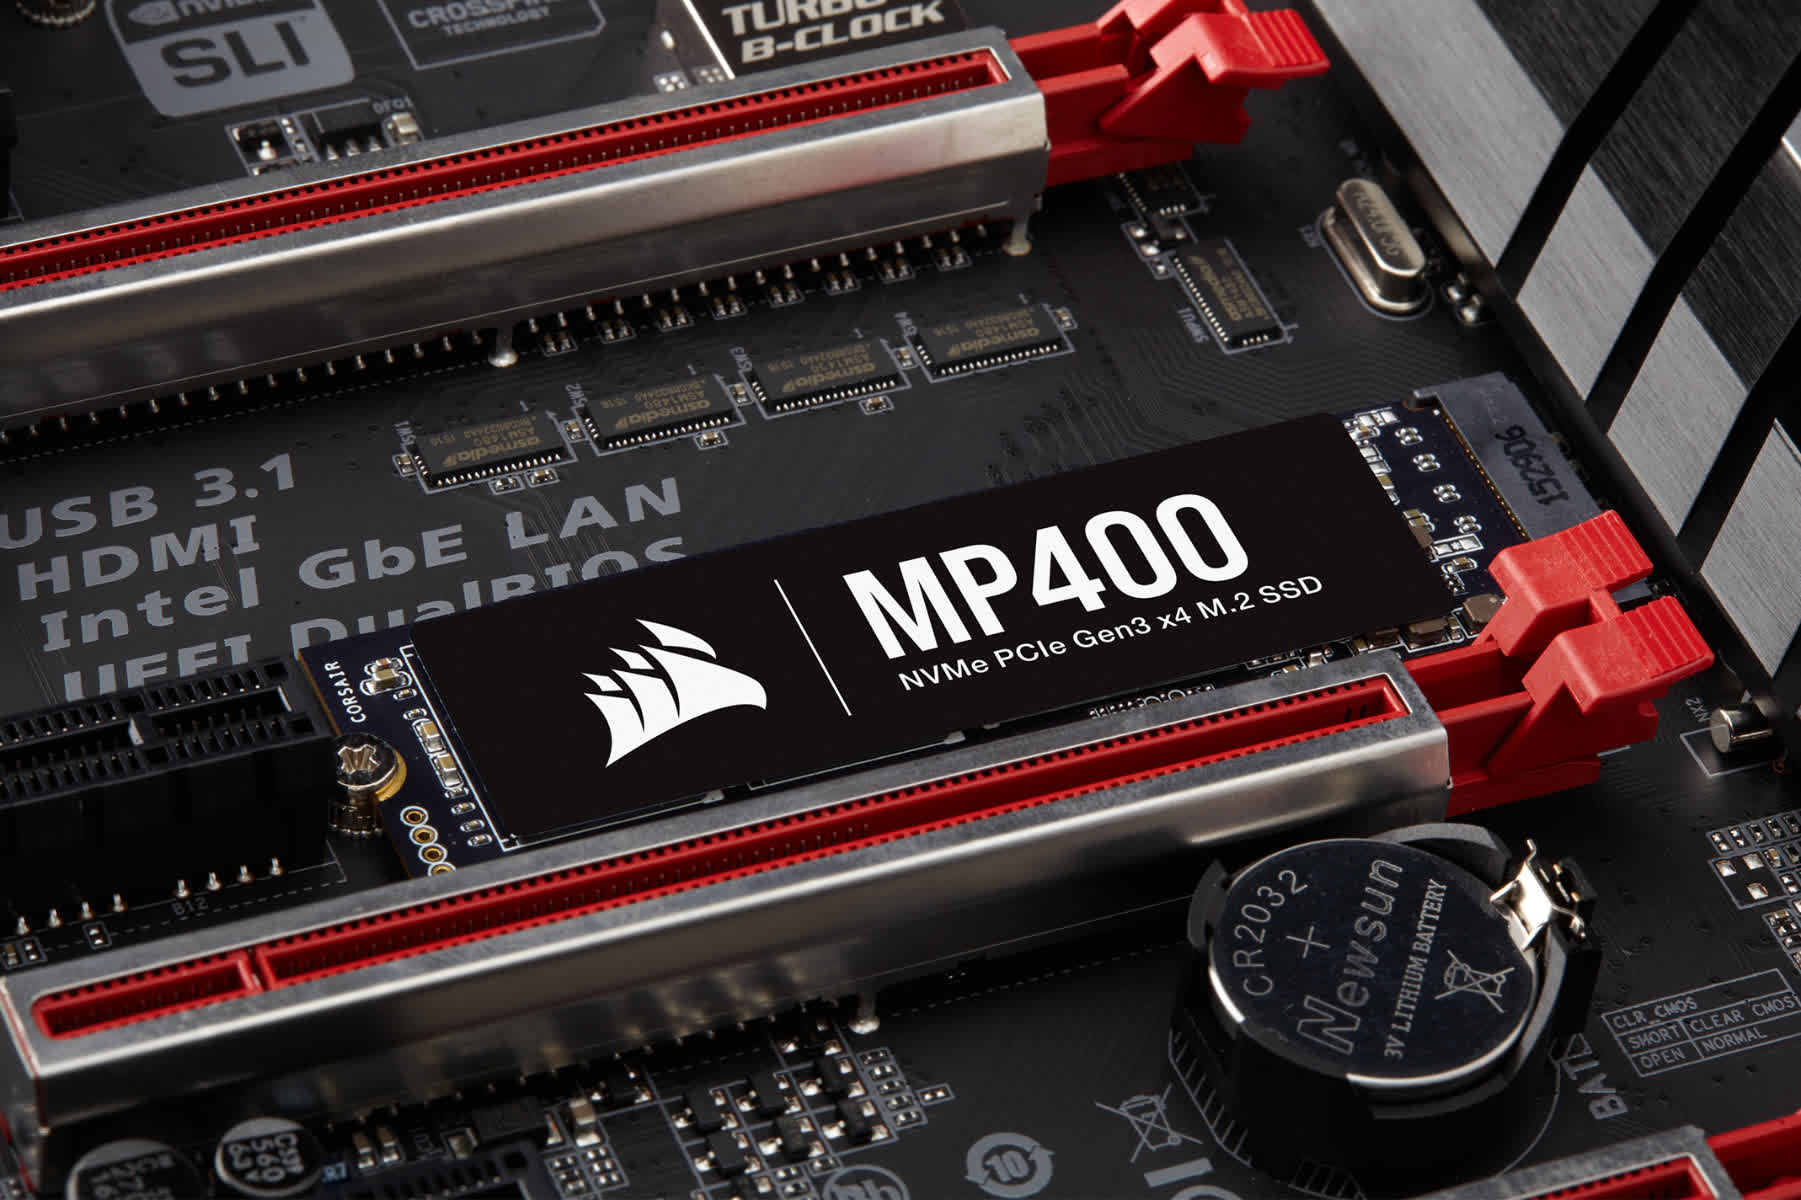 Corsair's latest MP400 m.2 NVMe SSD offers up to 8TB of QLC storage